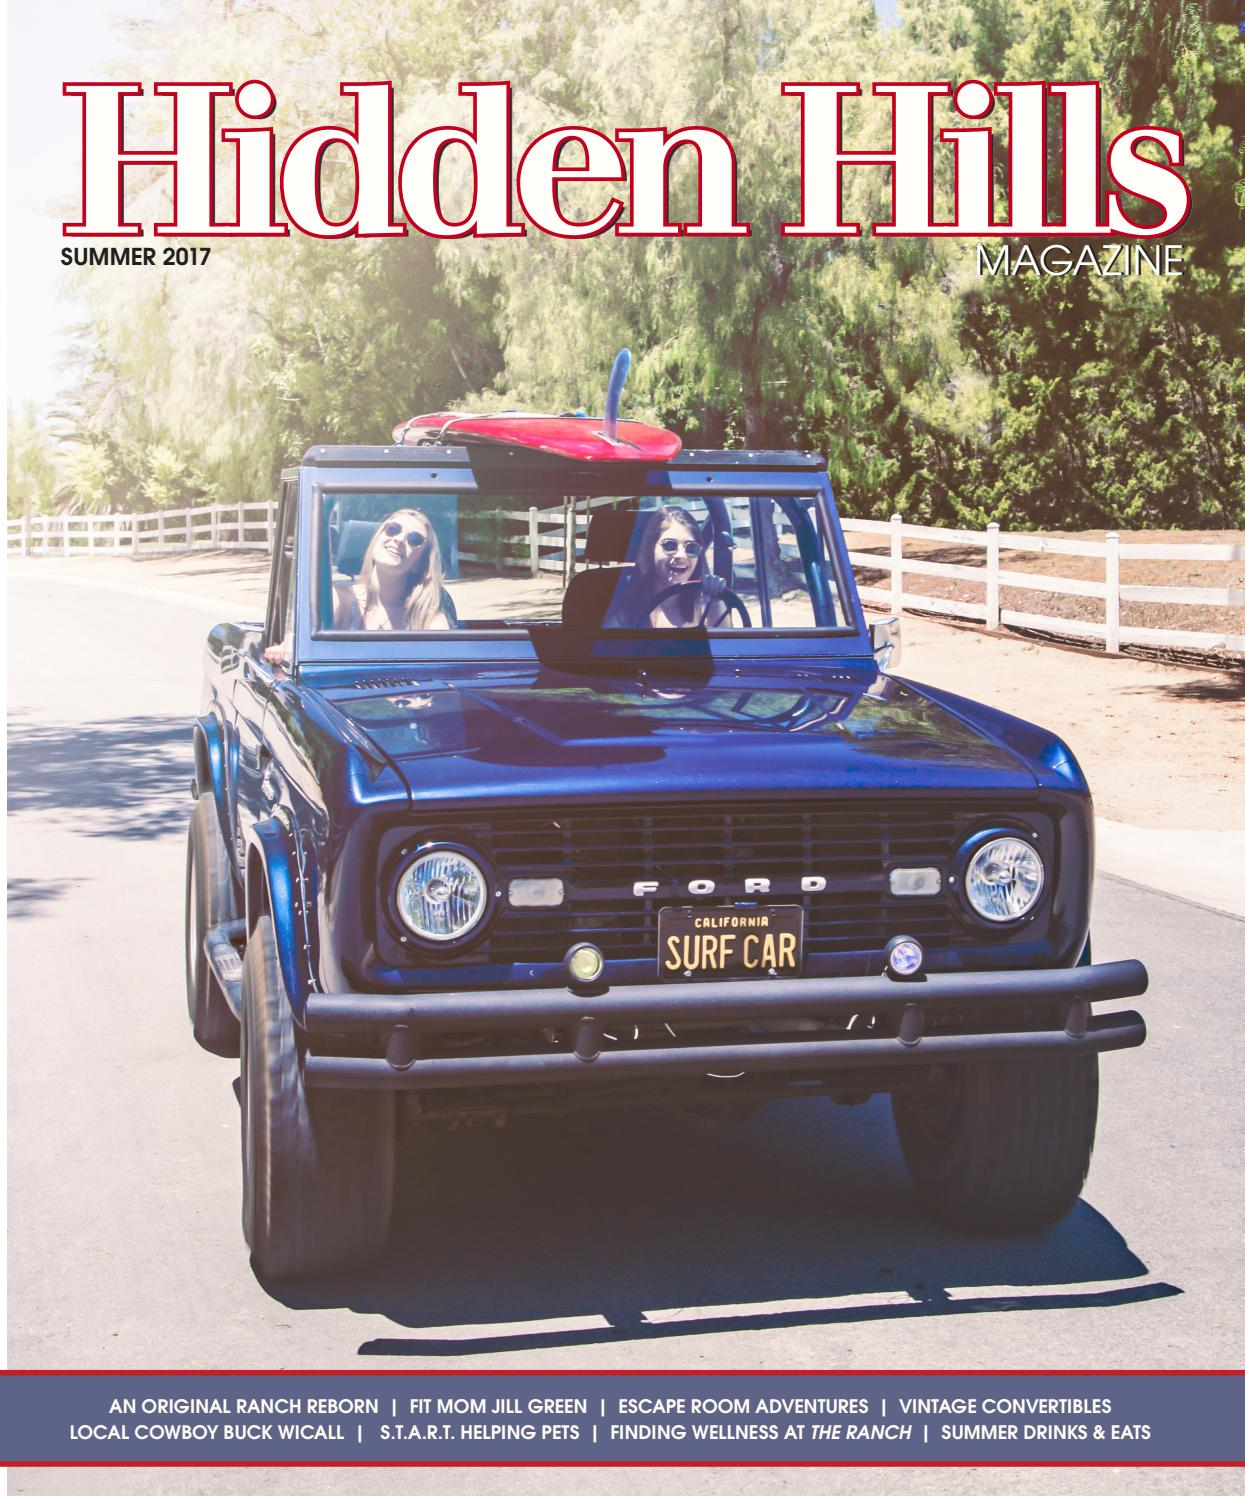 Summer Escape In The Berkshires: Hidden Hills Magazine Summer 2017 By Long Valley Media